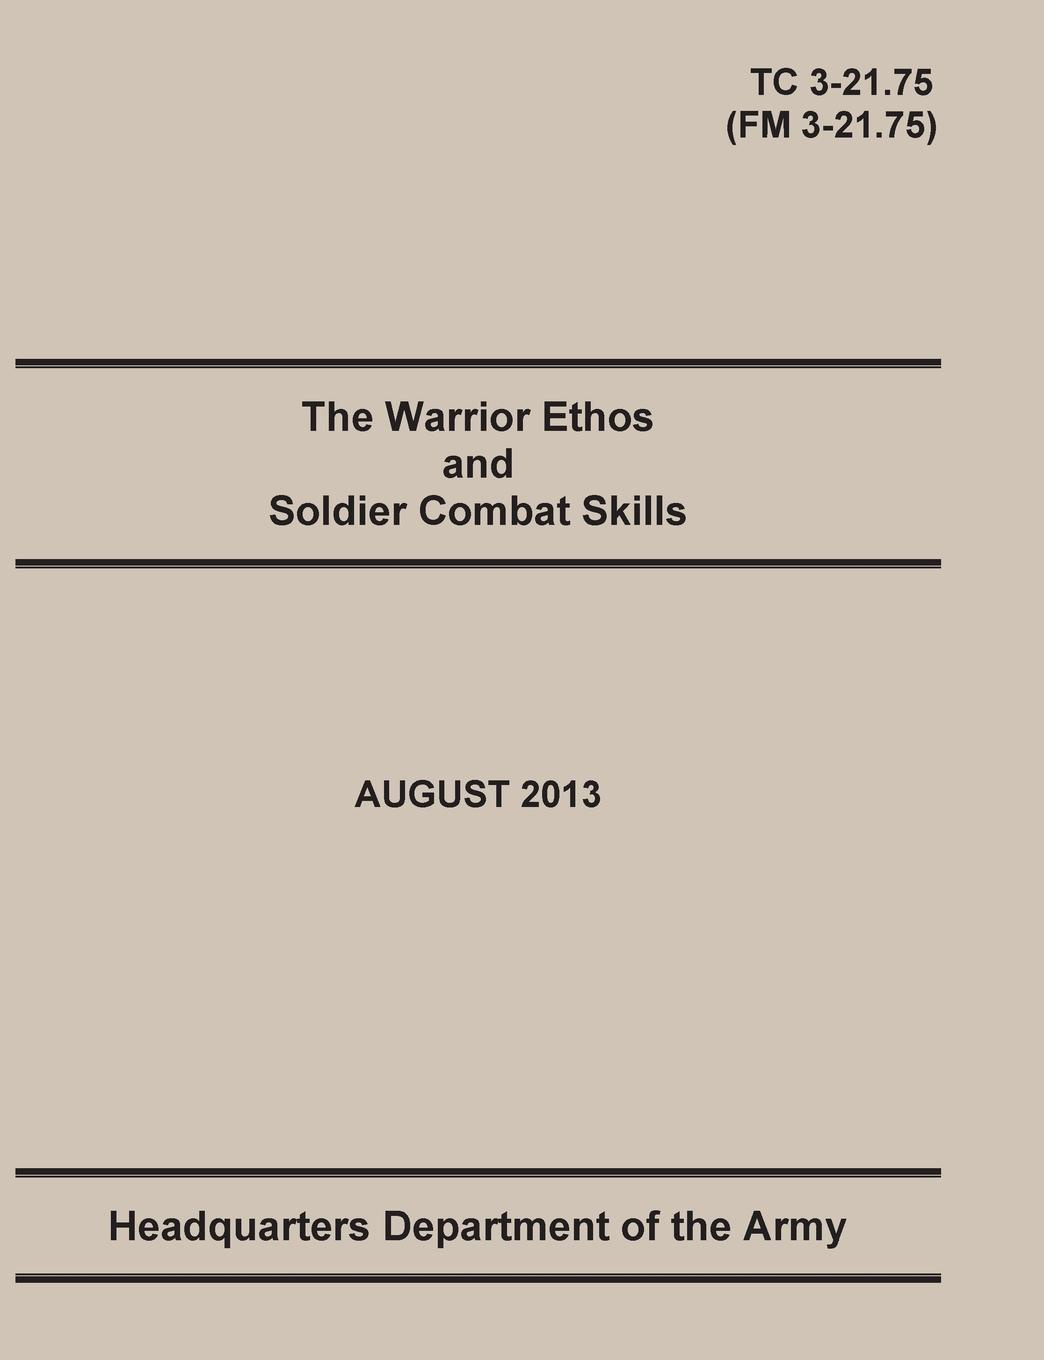 United States Army, Maneuver Center of Excellence, Department of the Army Headquarters The Warrior Ethos and Soldier Combat Skills. The Official U.S. Army Training Manual. Training Circular TC 3-21.75 (Field Manual FM 3-21.75). August 2013 revision. leadership center for army and us army the u s army leadership field manual fm 22 100